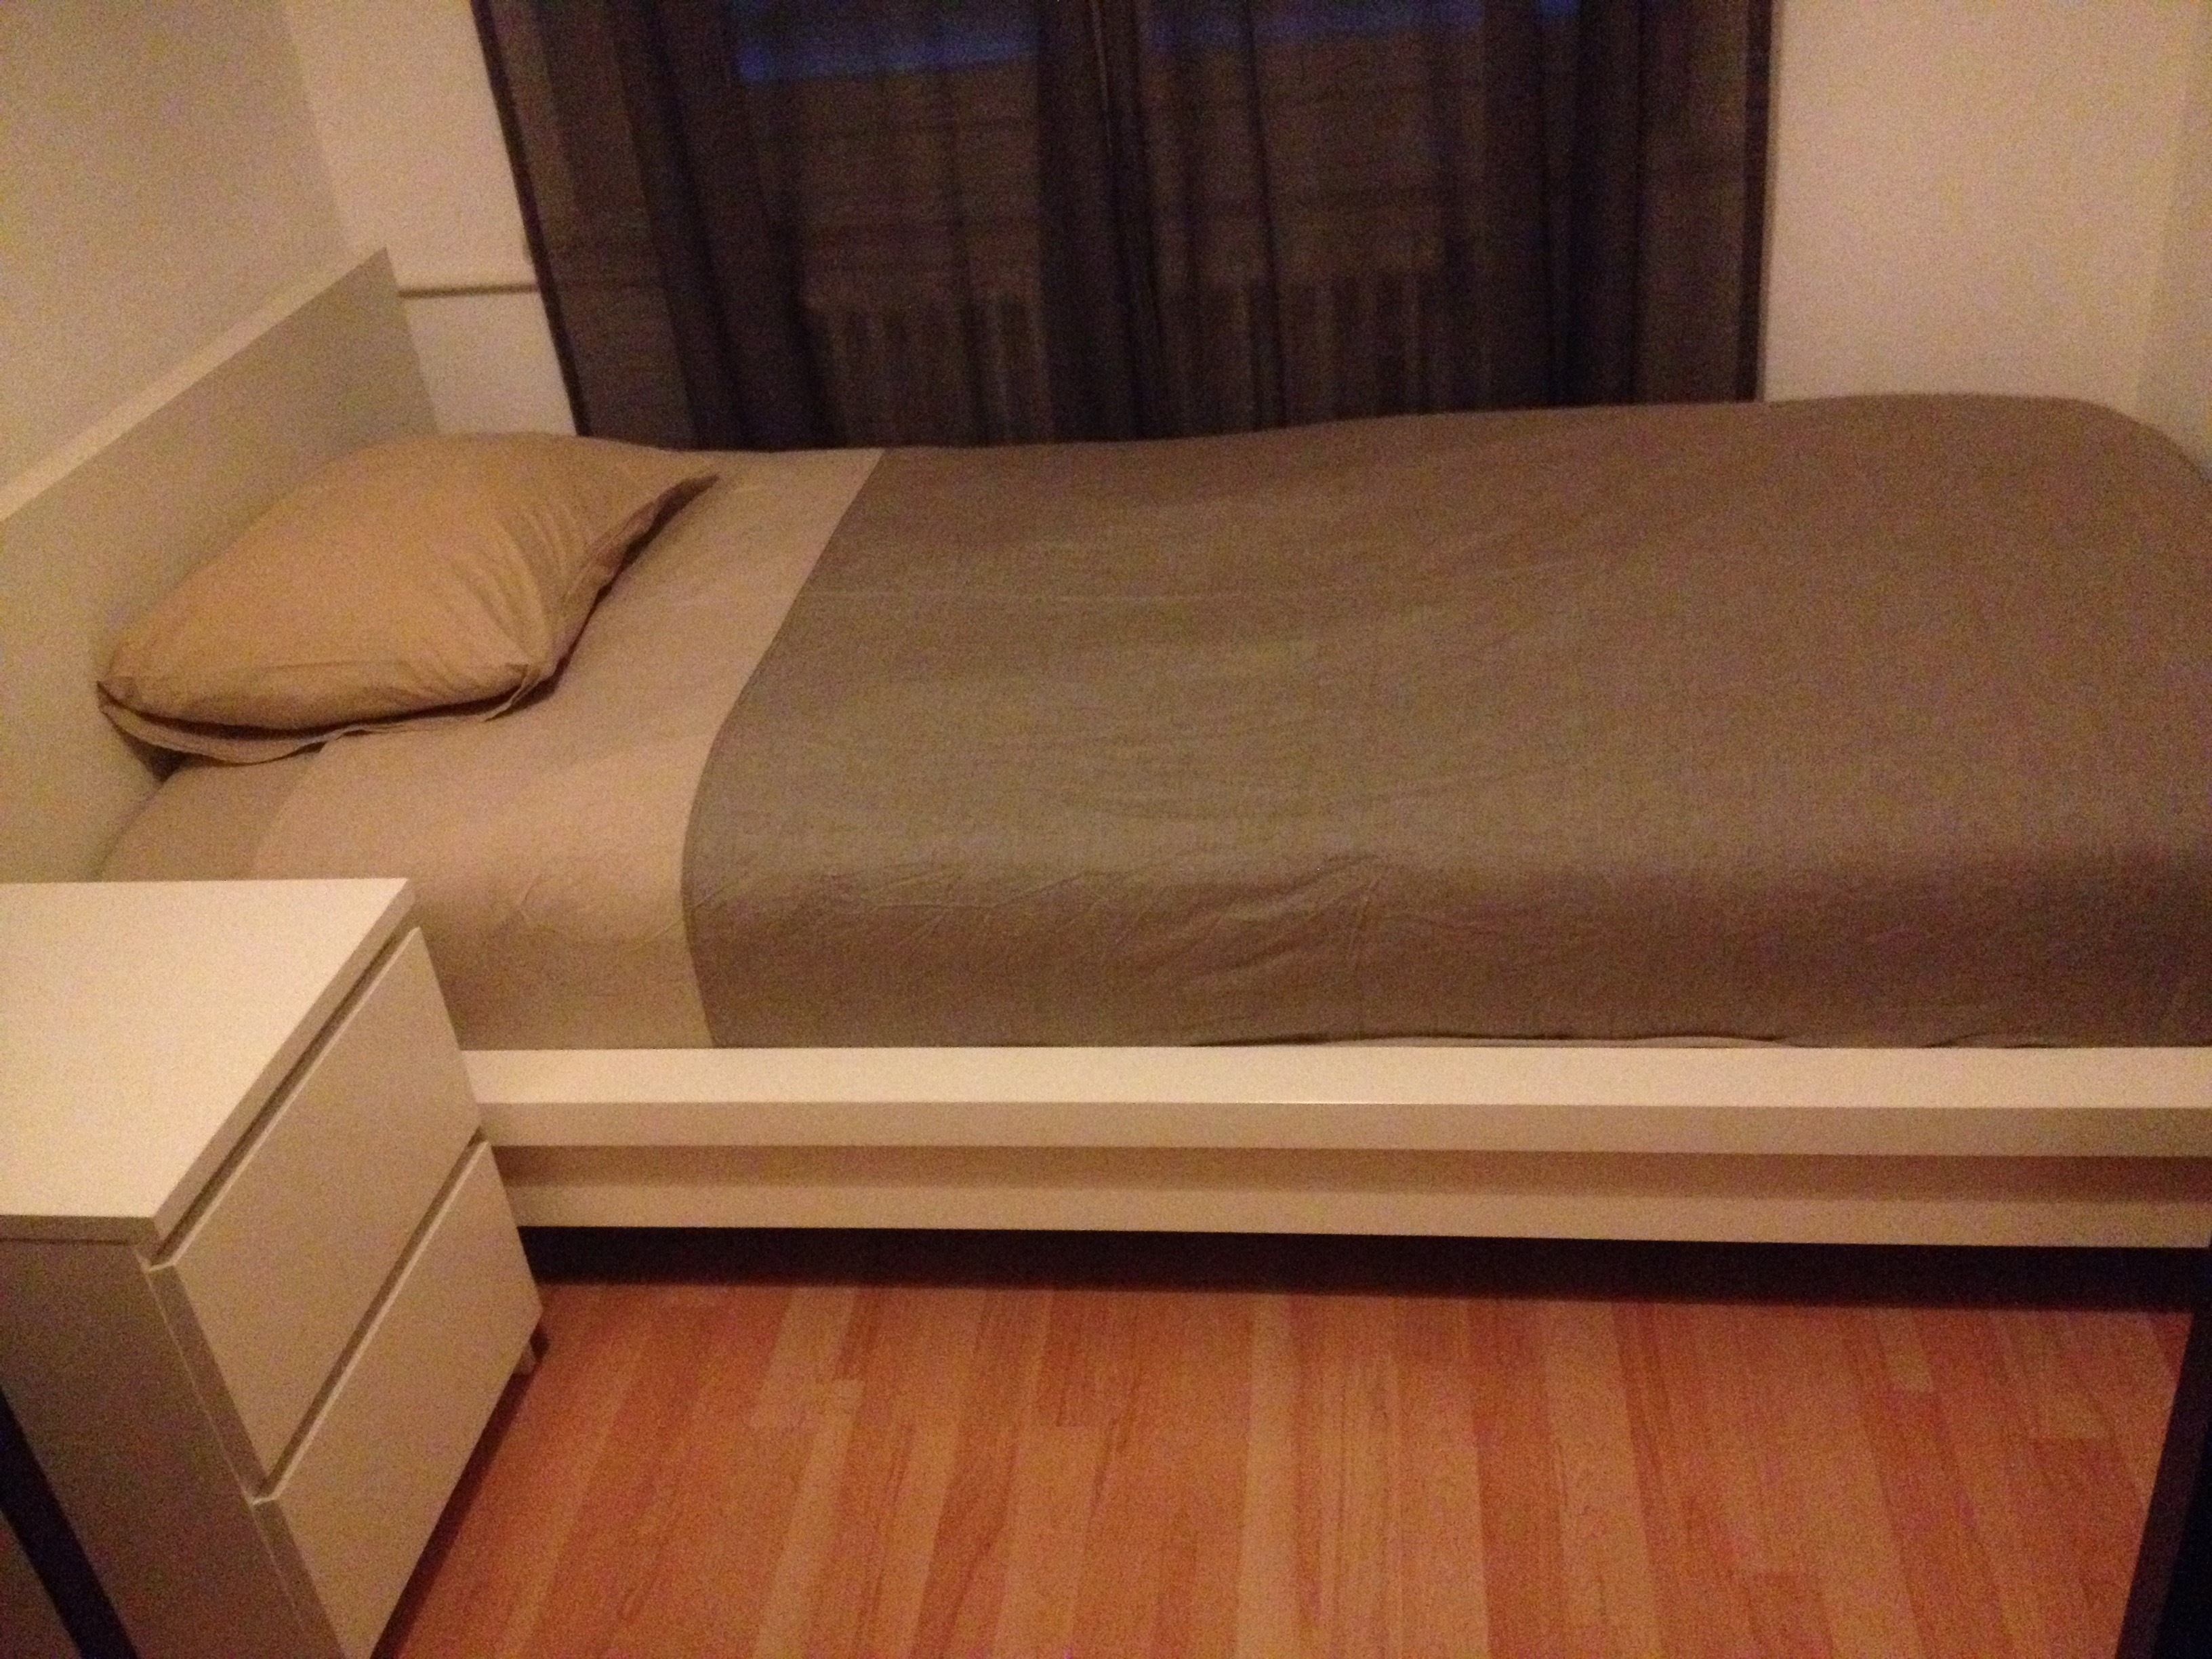 Apartment 5 P. Furnished, Renovated